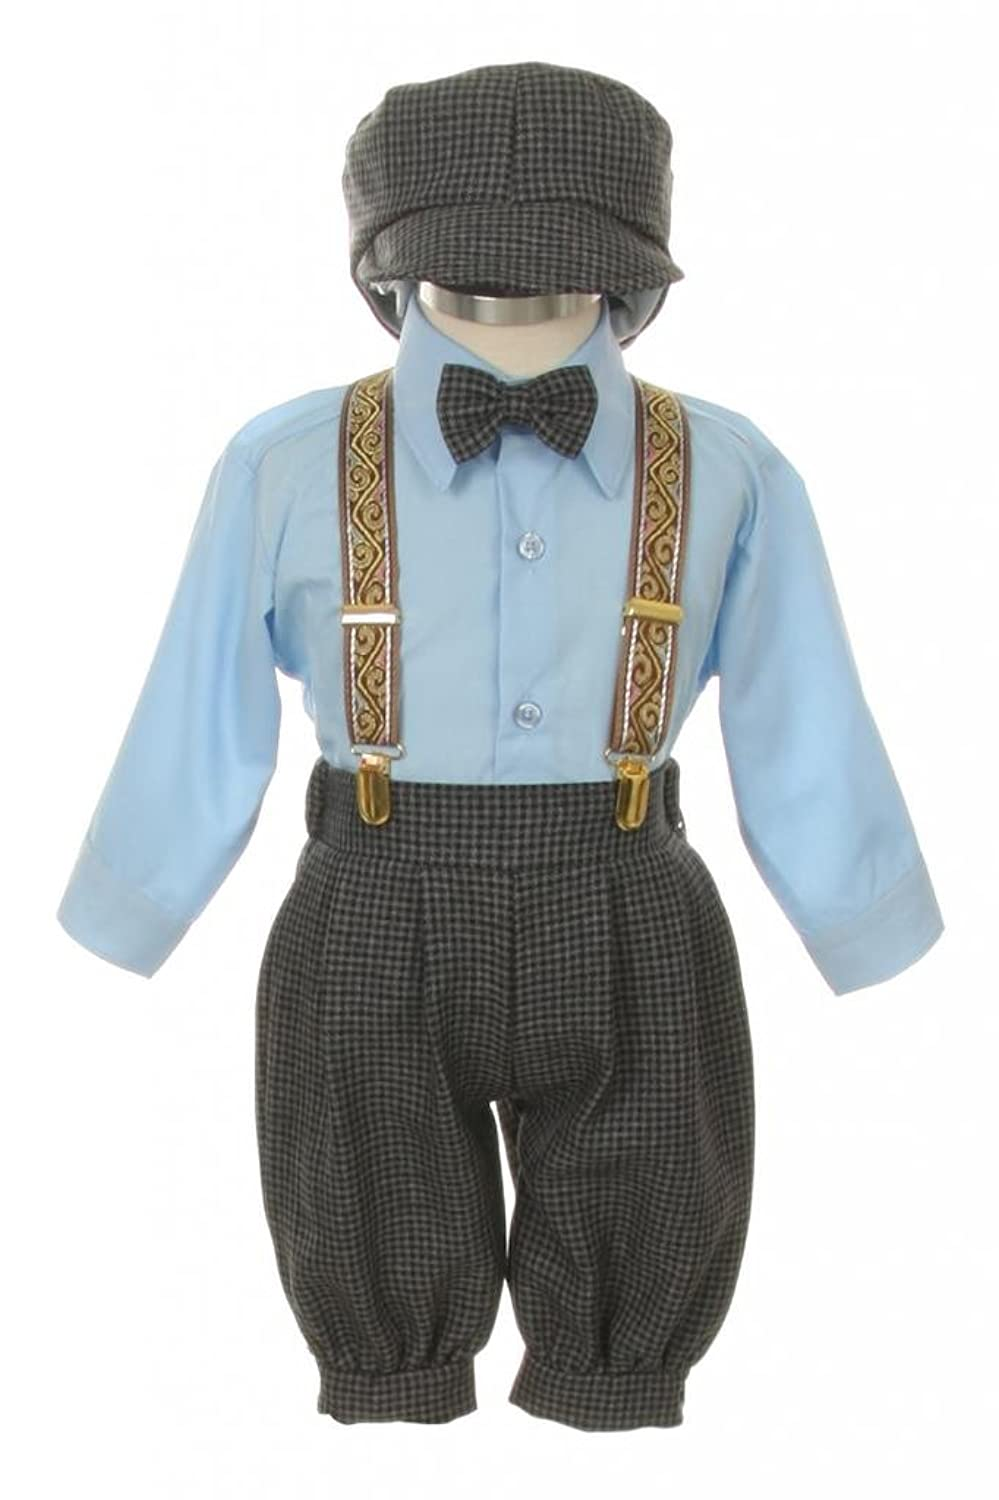 Amazon.com: Vintage Dress Suit-Tuxedo Knickers Outfit Baby Boys ...